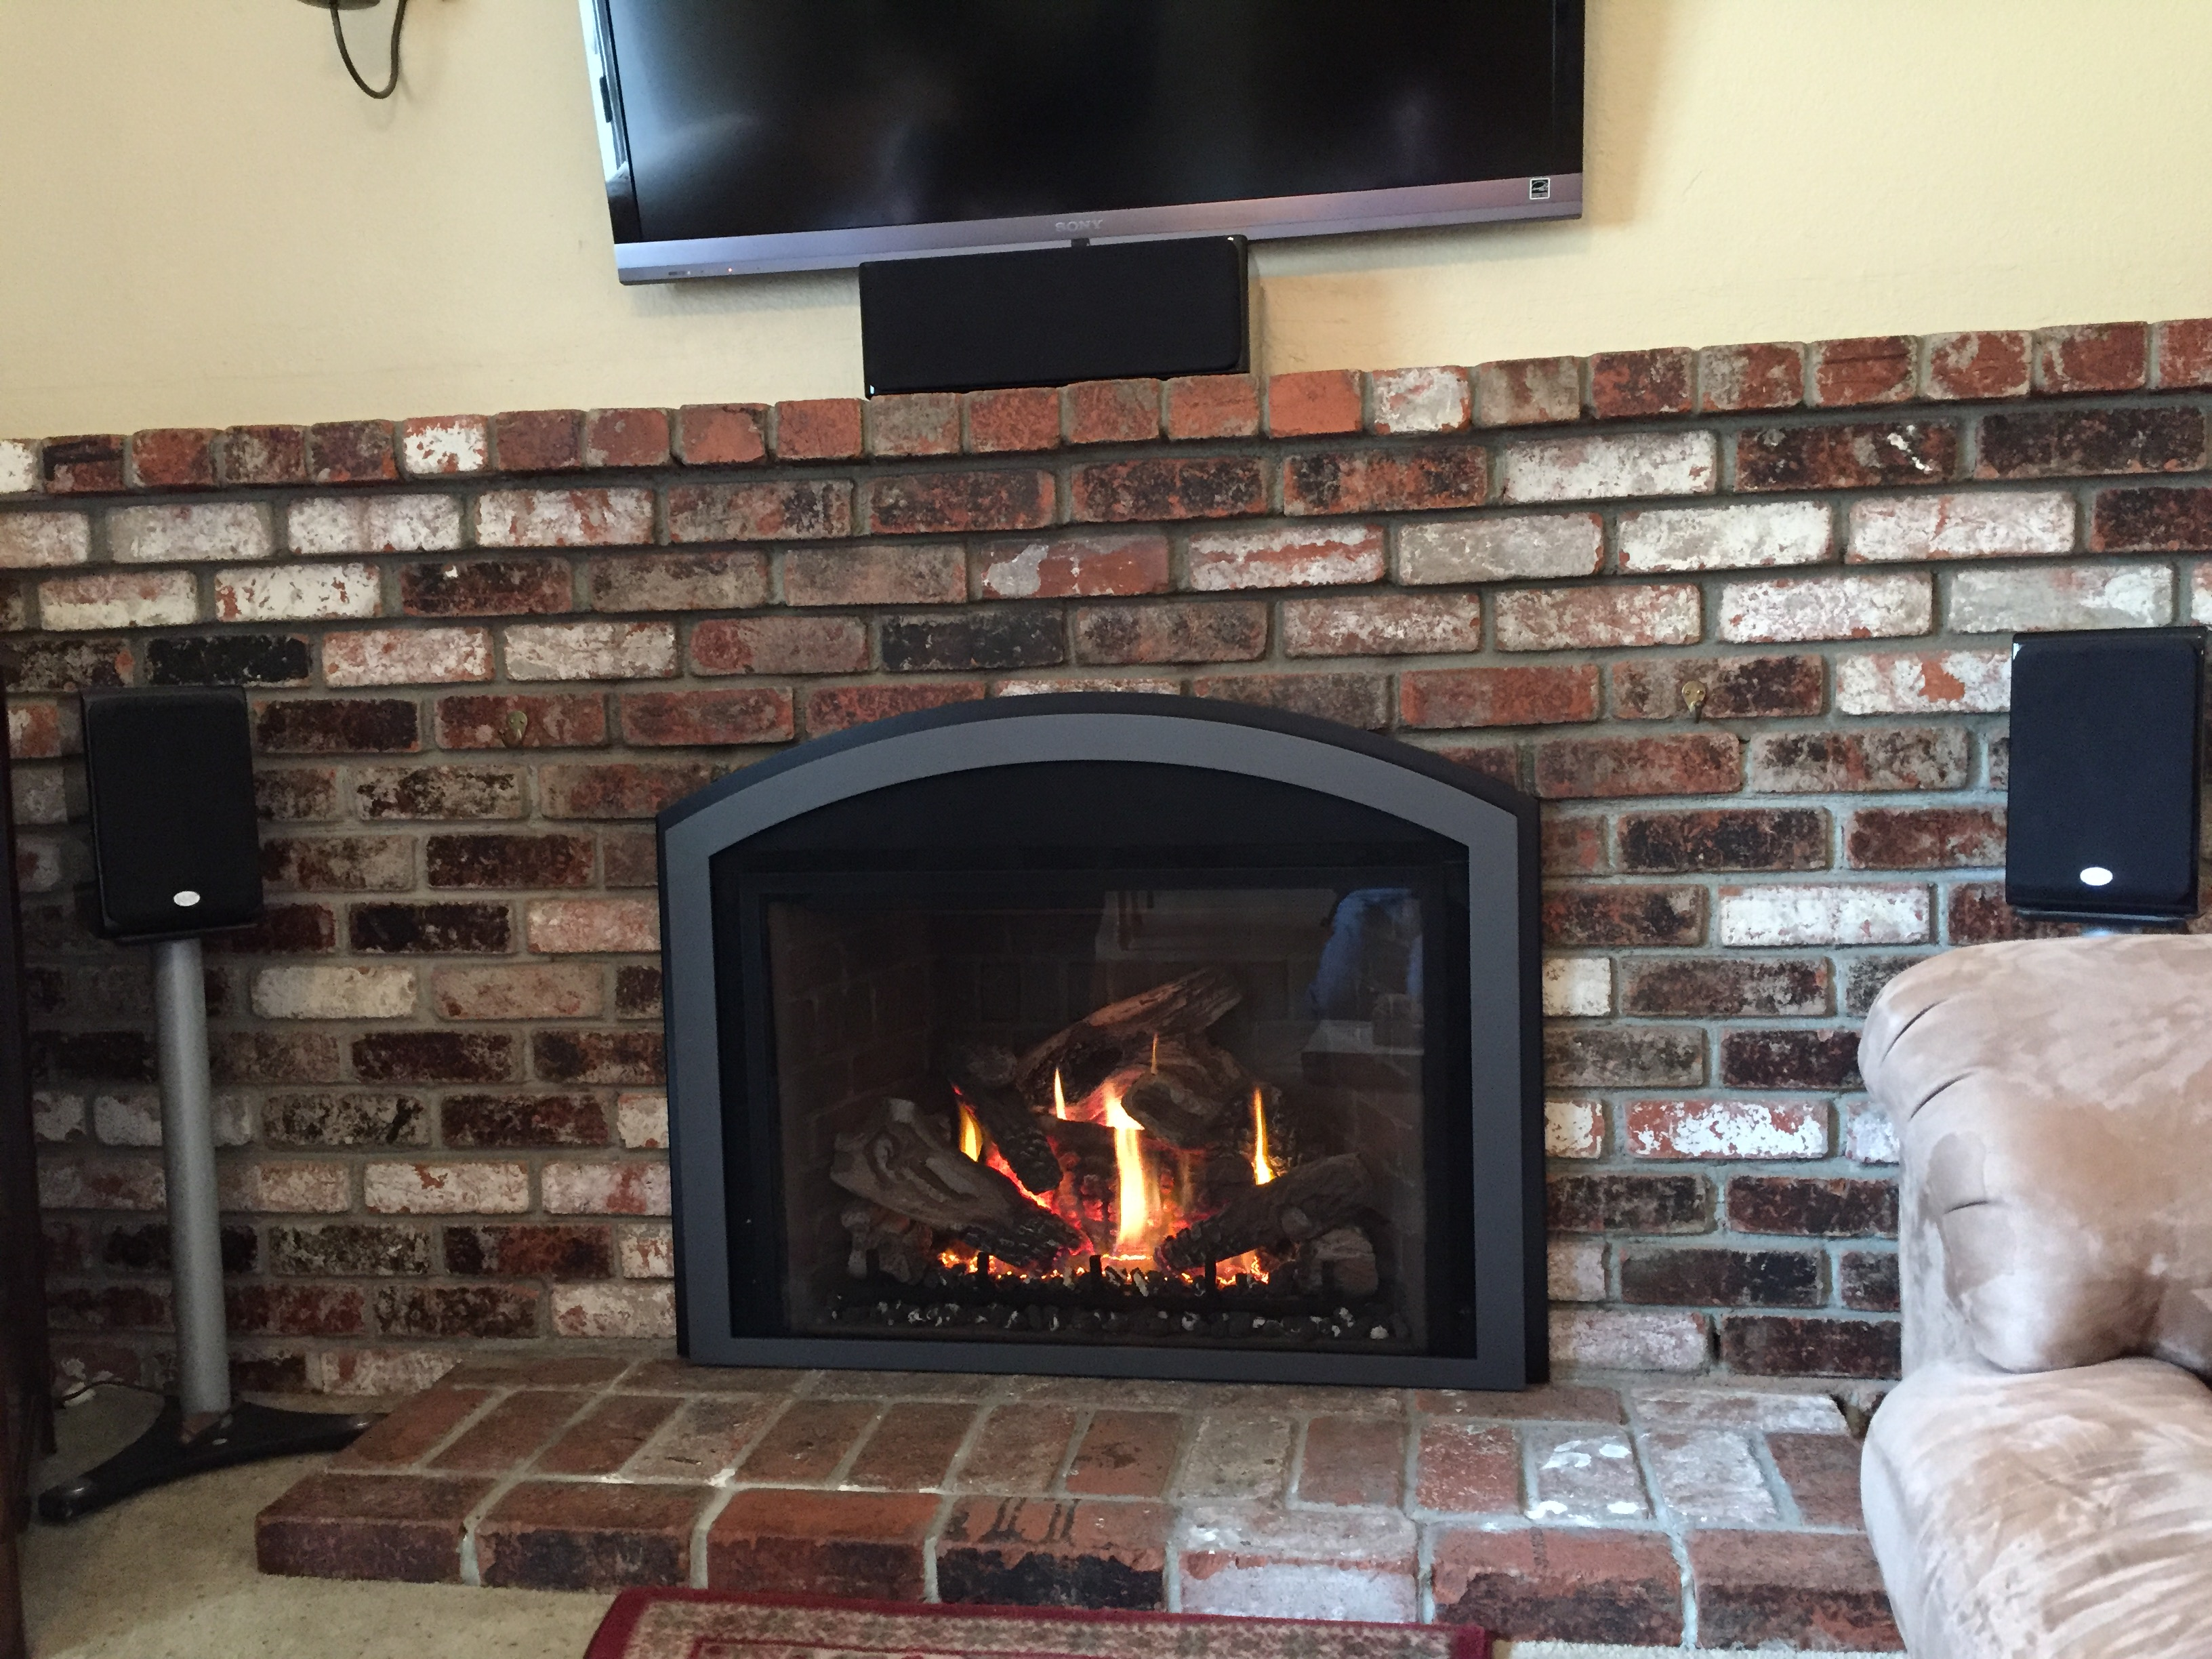 jerrys fireplaces hayward ca 94545 yp com